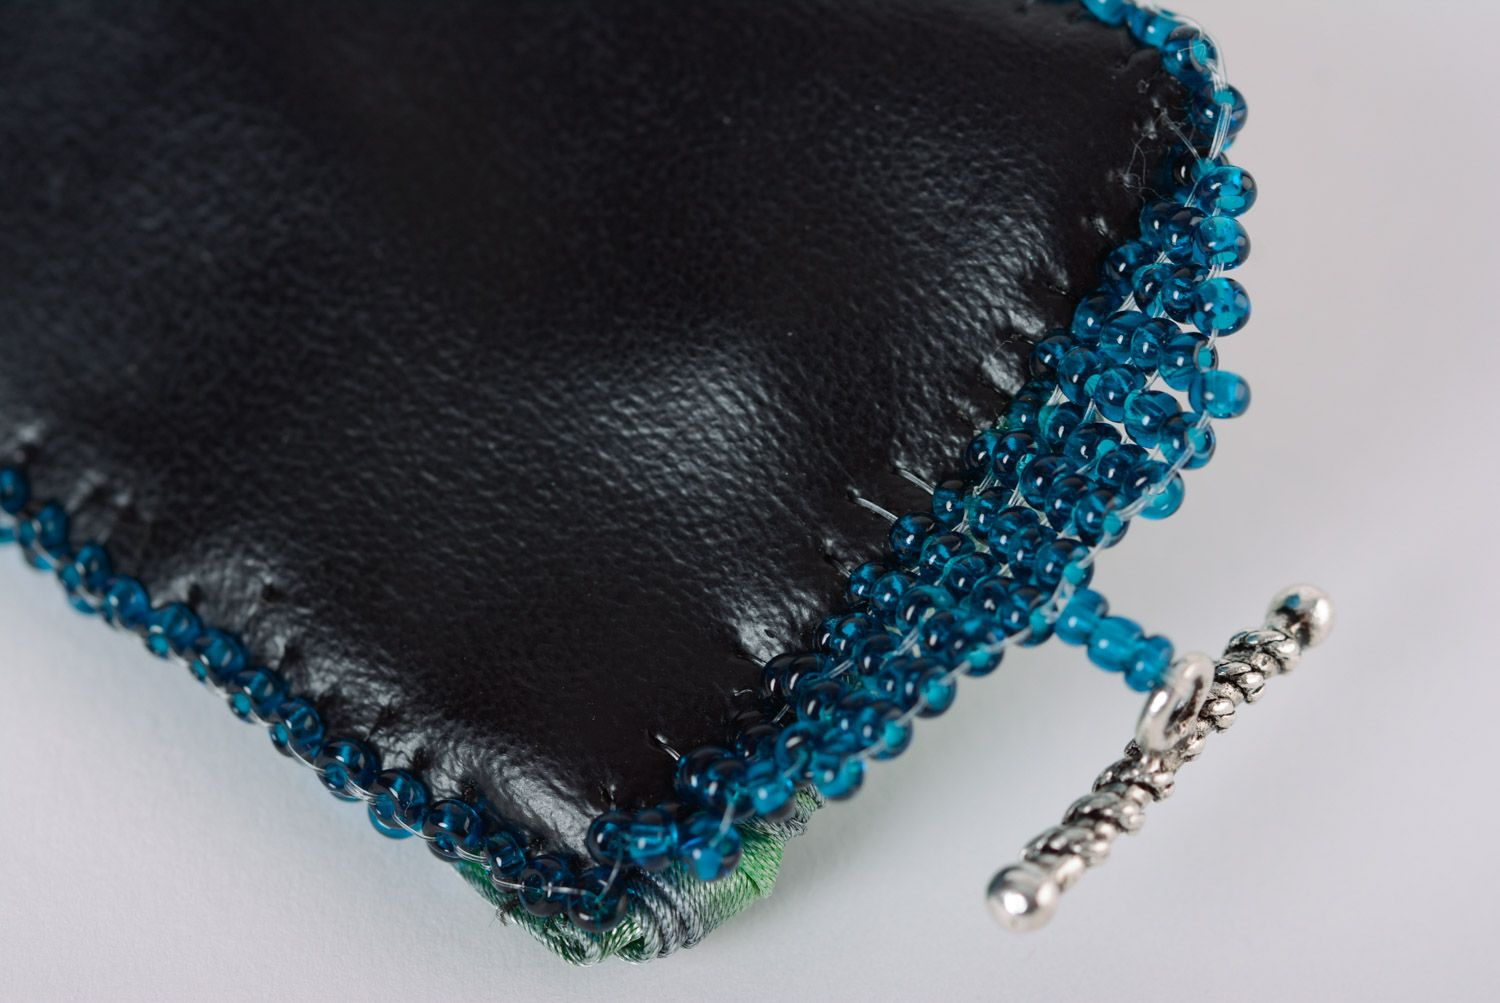 Handmade wide embroidered bead bracelet on artificial leather basis photo 5